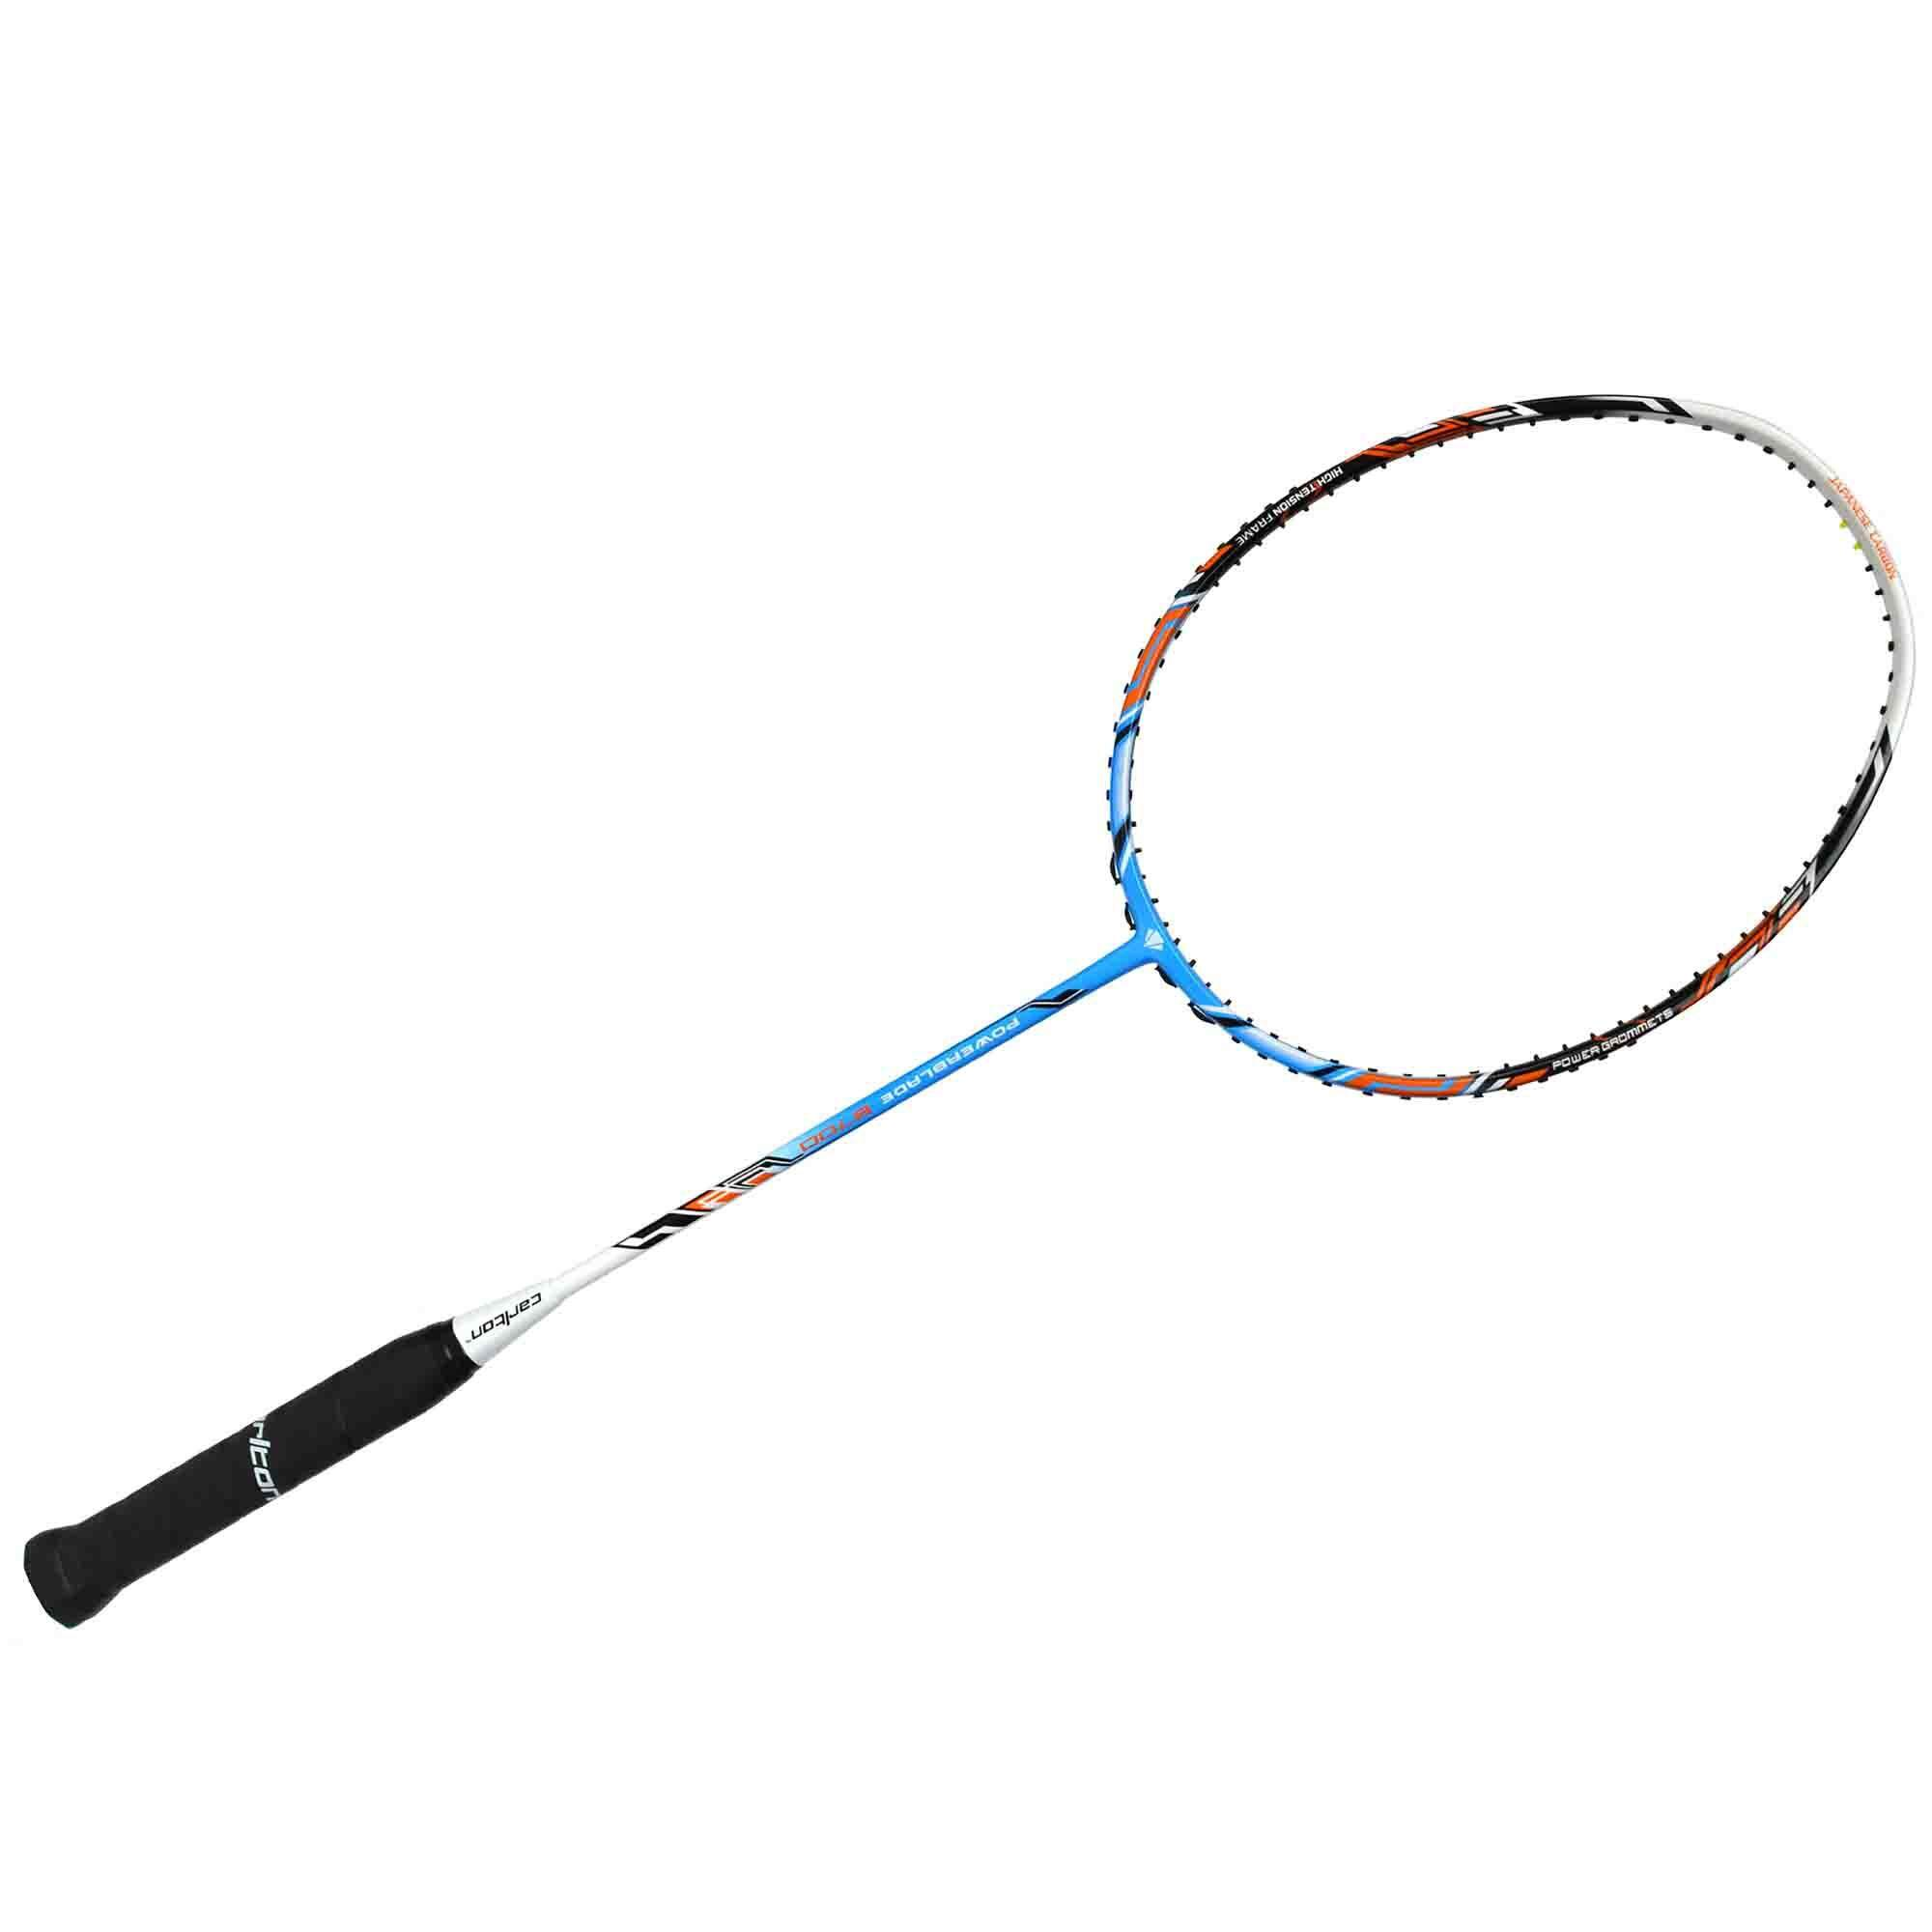 Carlton PowerBlade 8700 Badminton Racket